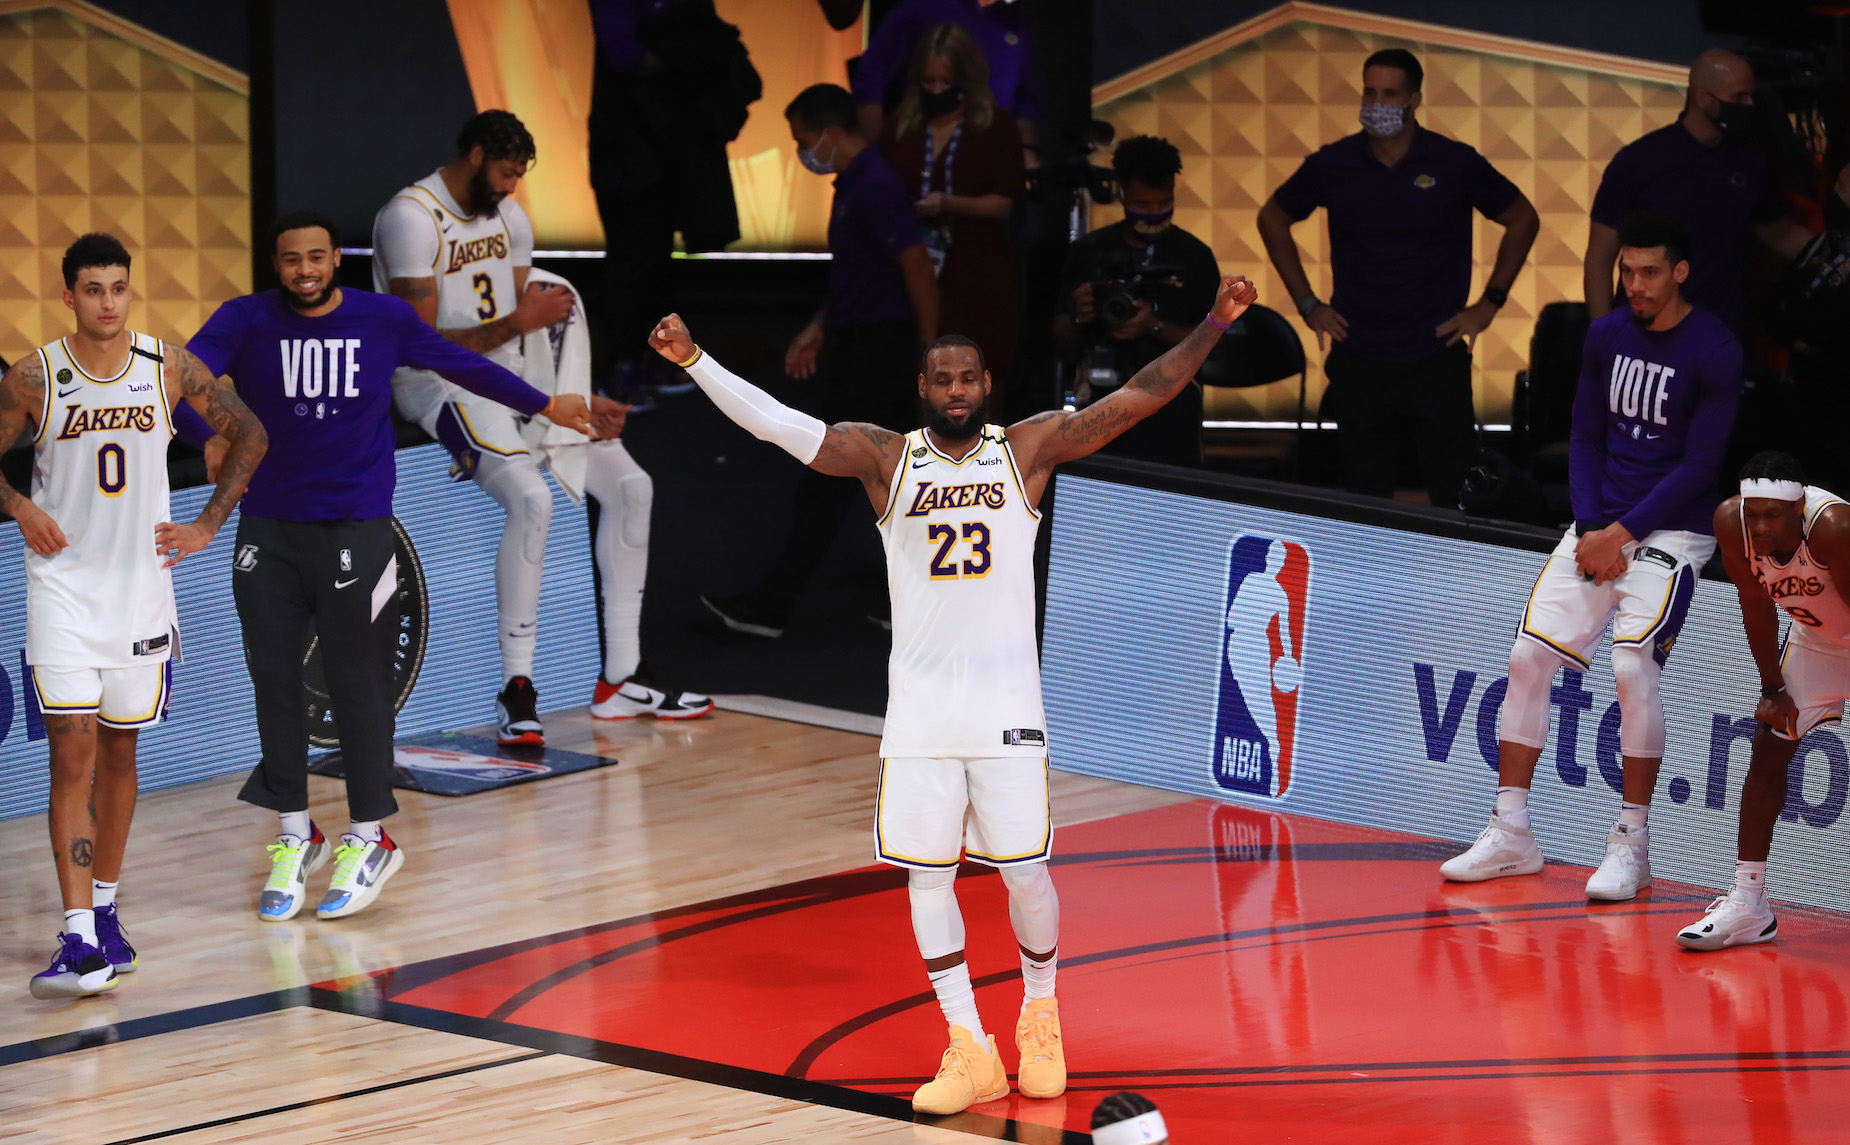 After winning another NBA title, LeBron James strengthened his claim to basketball's GOAT title.